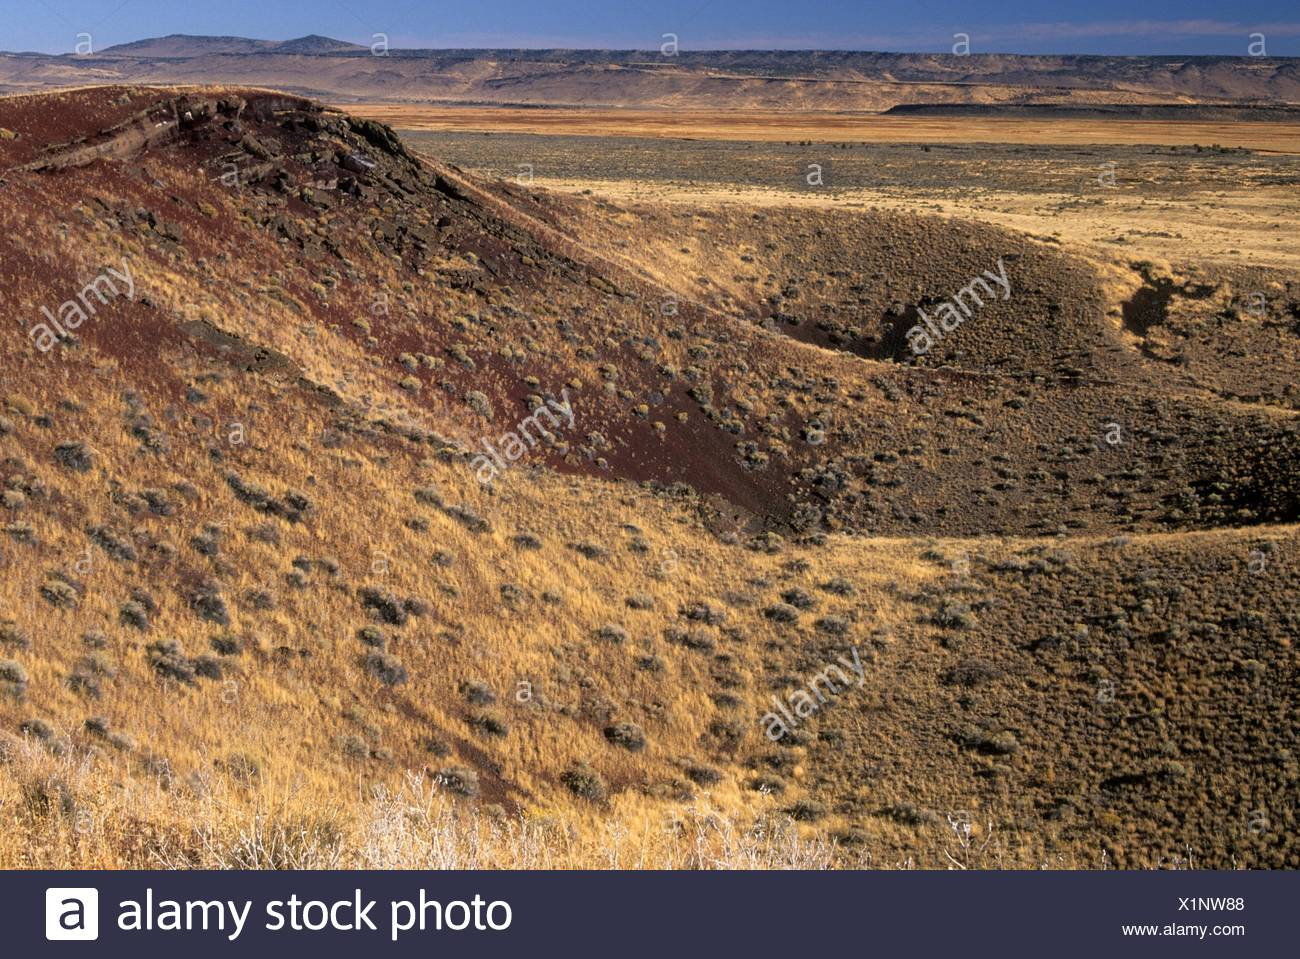 Bomb Crater Stock Photos & Bomb Crater Stock Images - Alamy